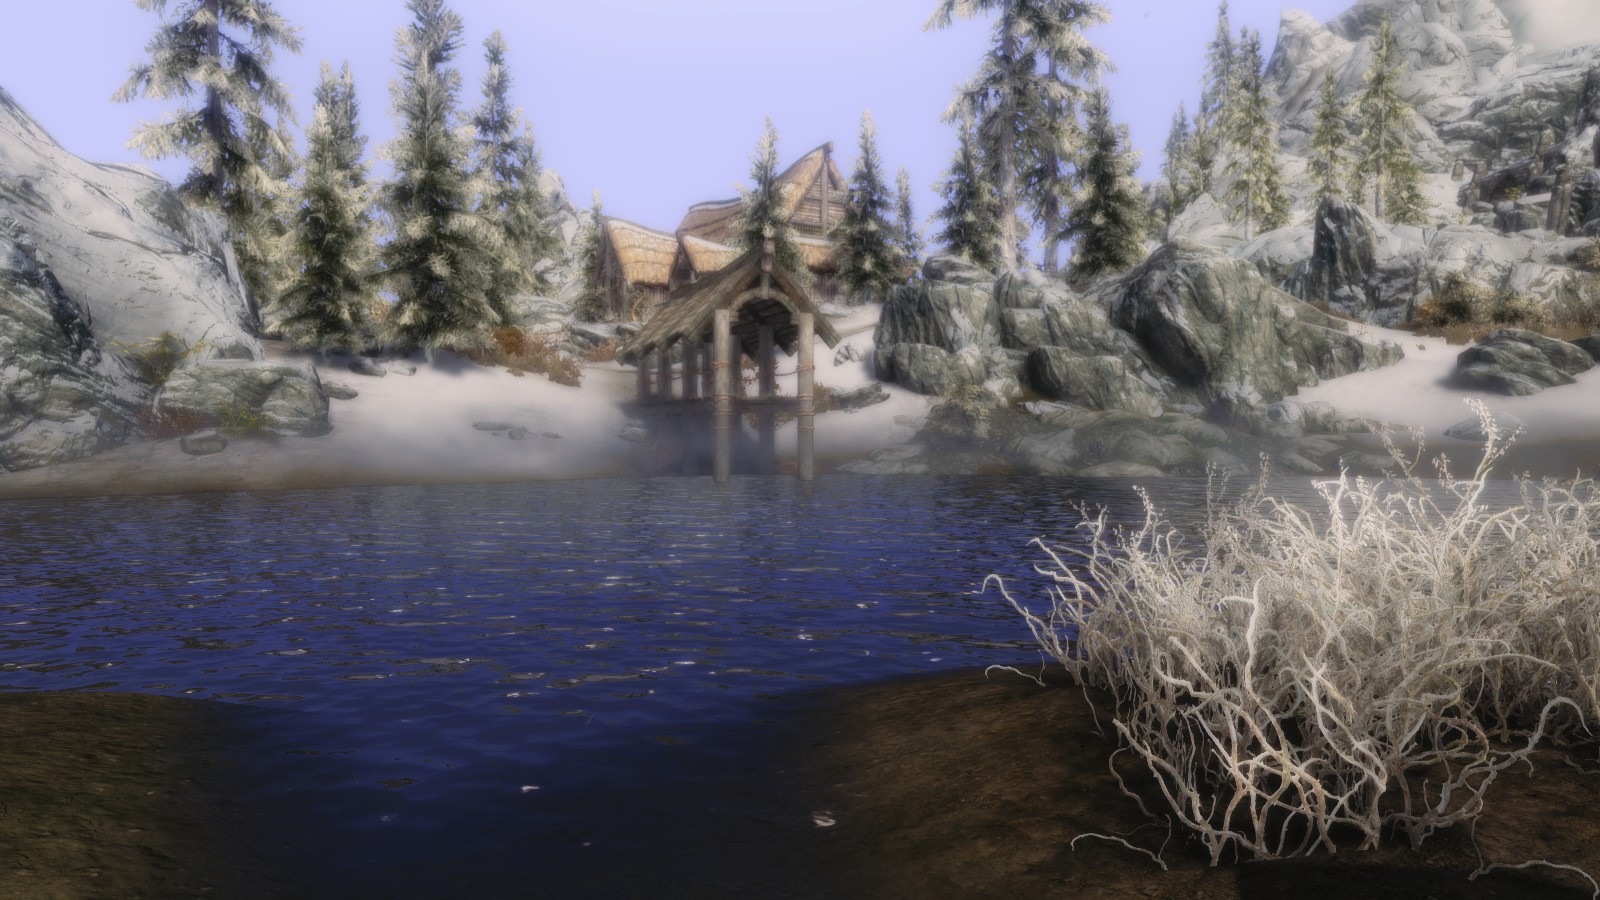 A Cold Day by the Inn